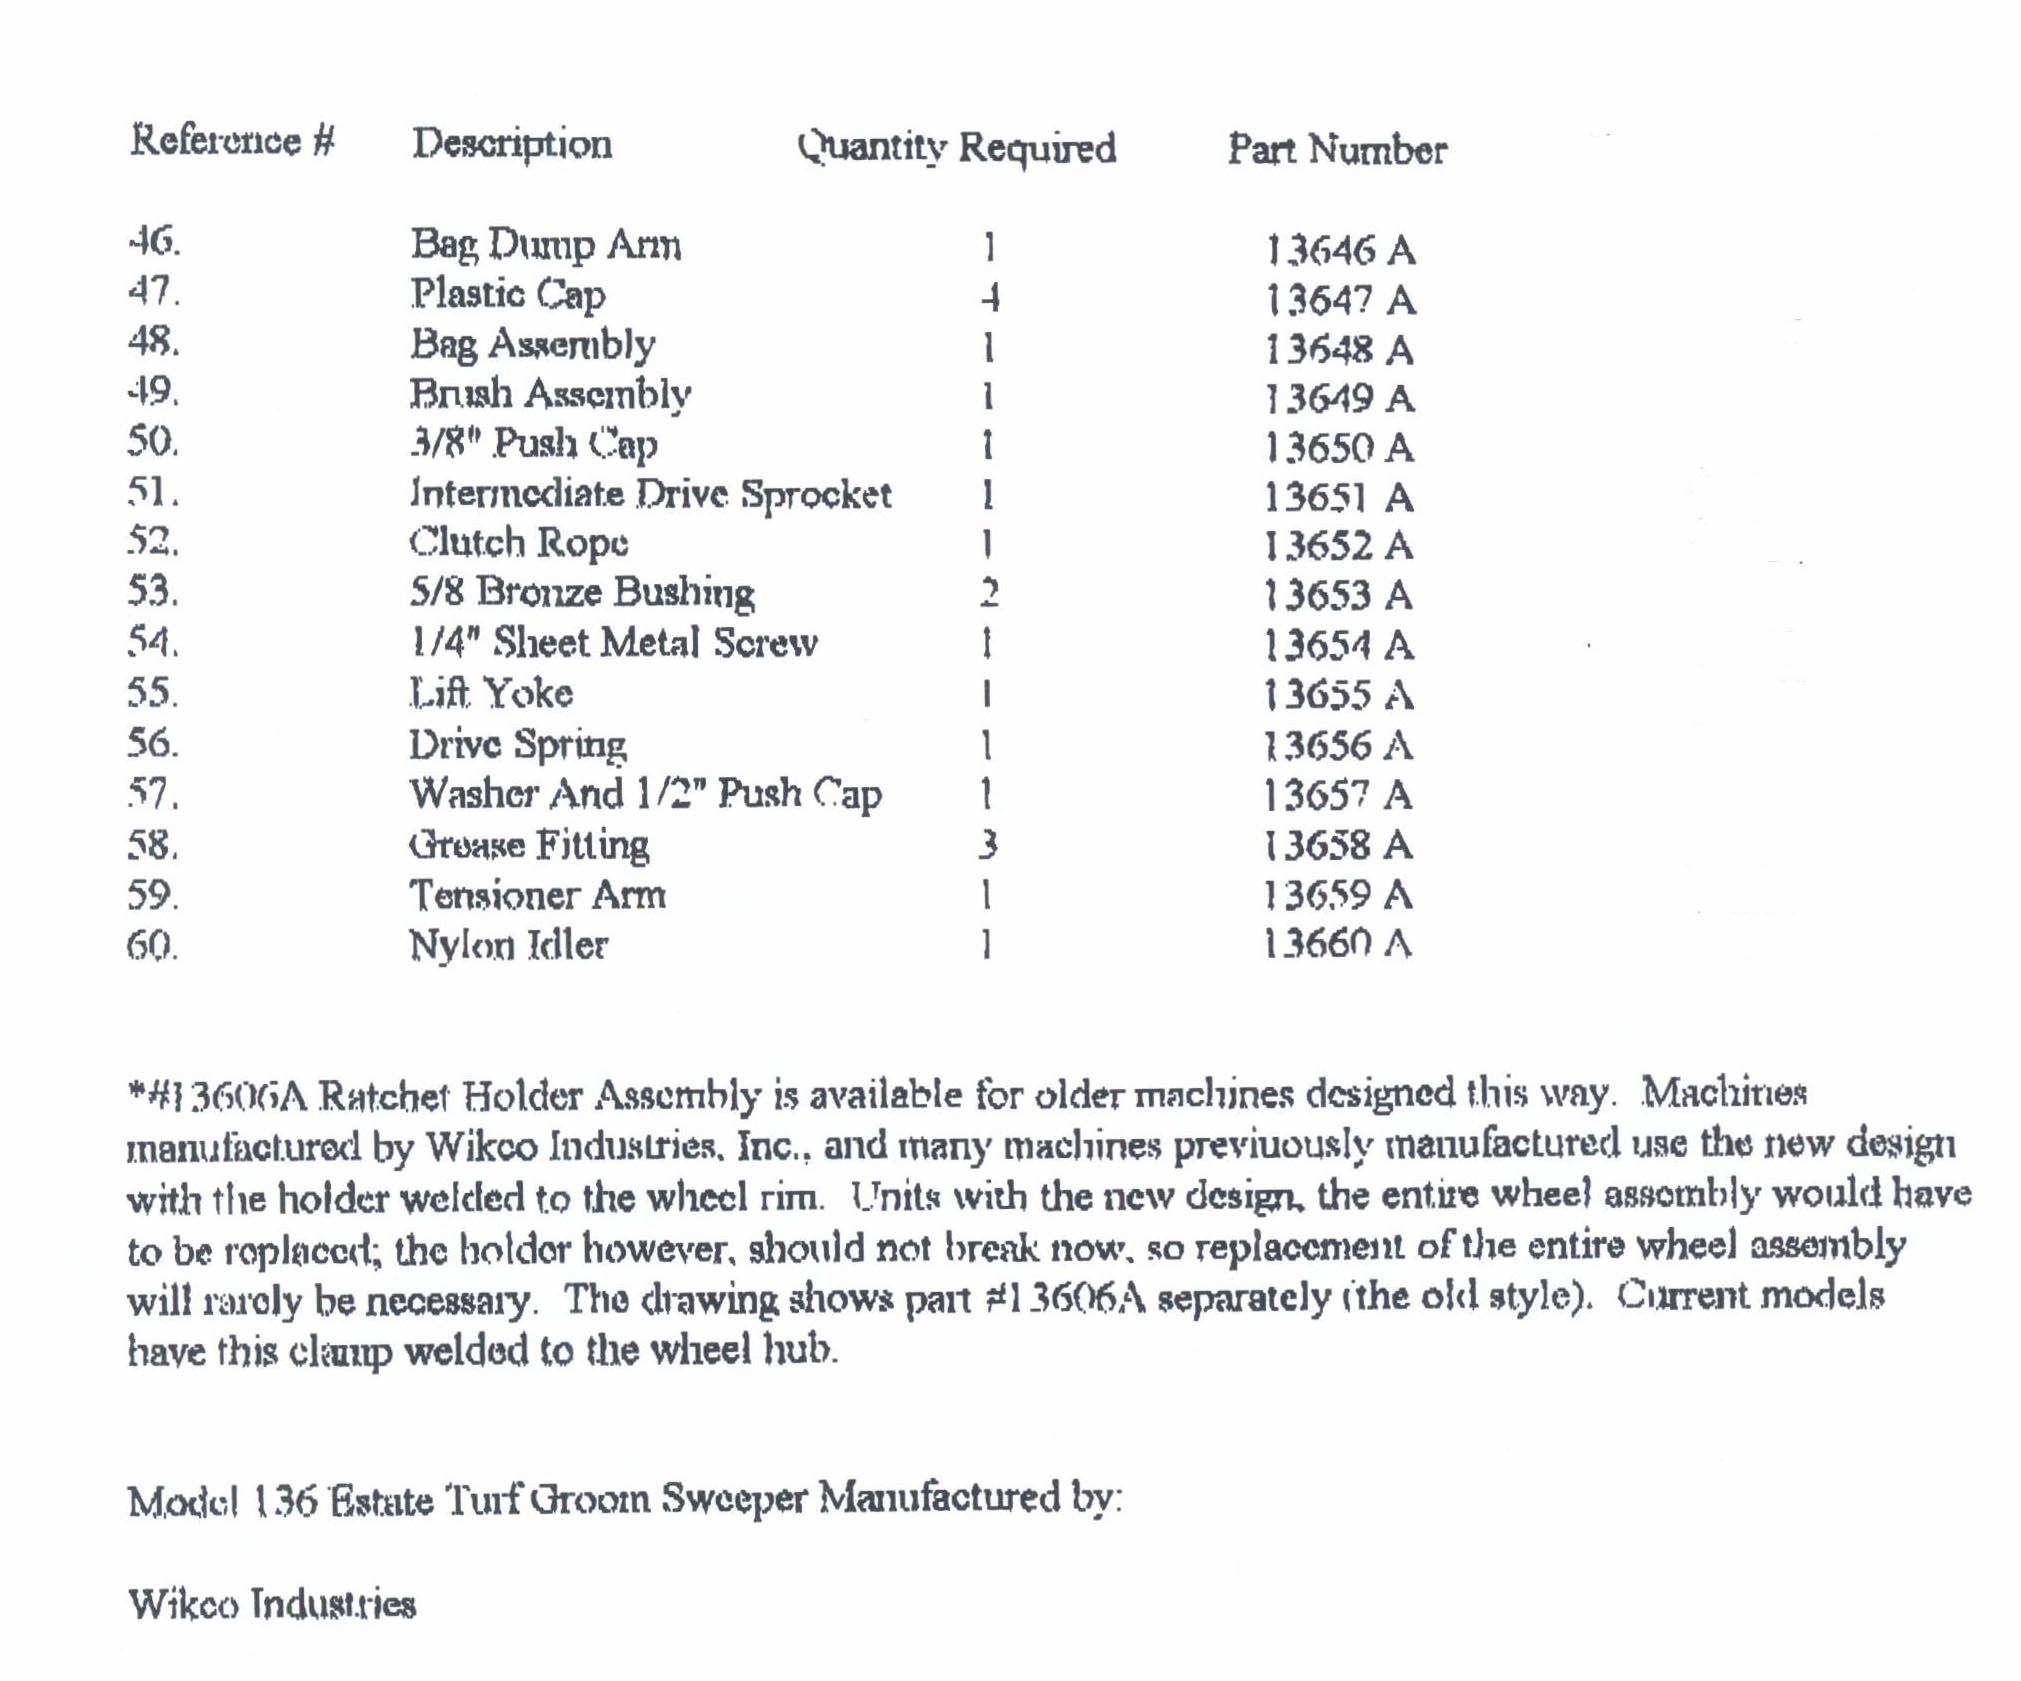 Parts List For Model 136 Sweeper